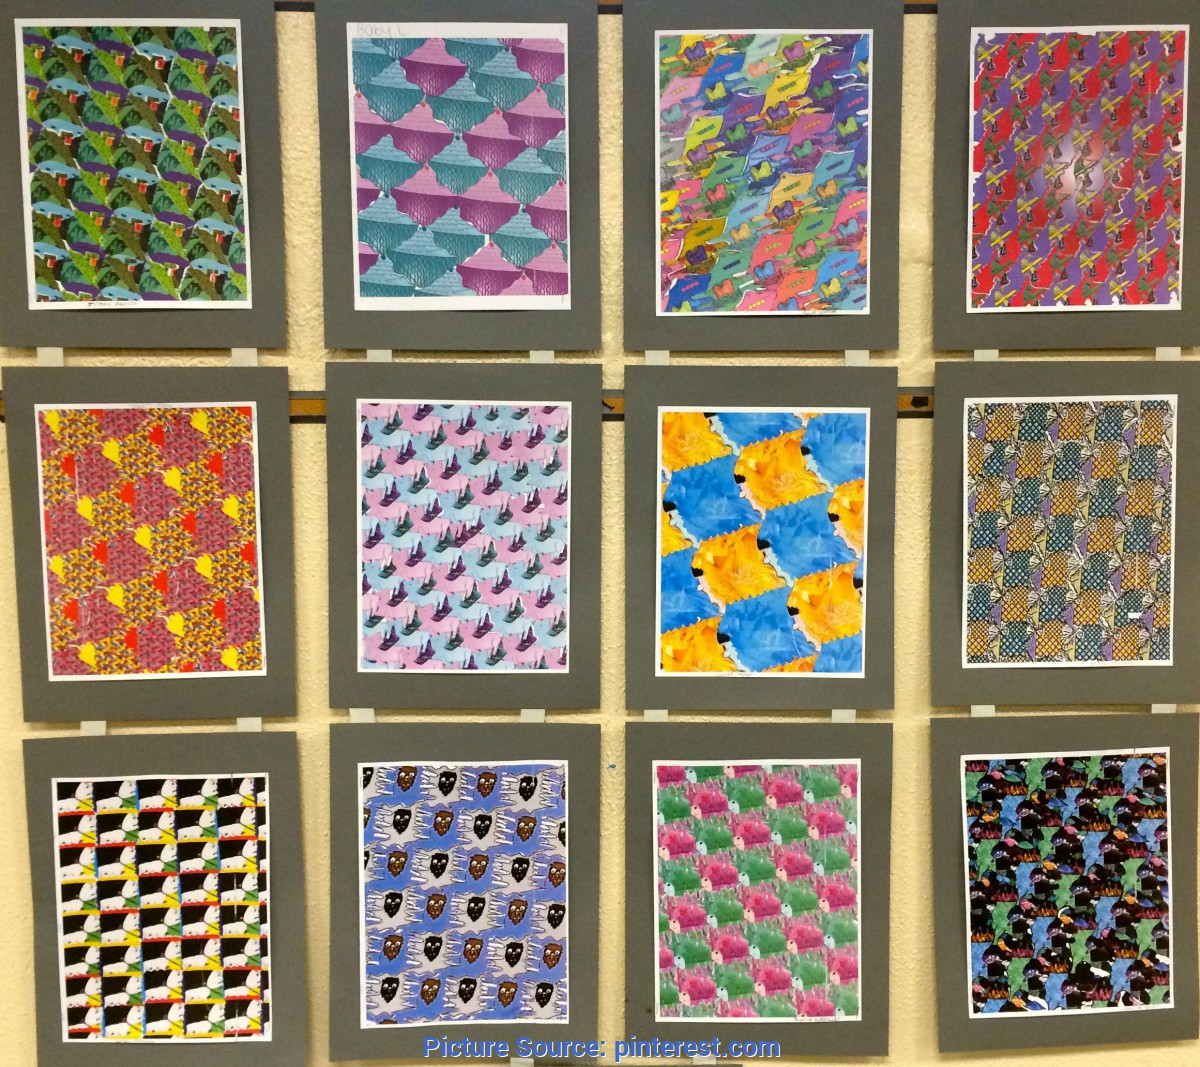 Typical Simple Art Projects For Middle School Students Middle School Art Kids Having Fun - Google Search | 7Th Grad